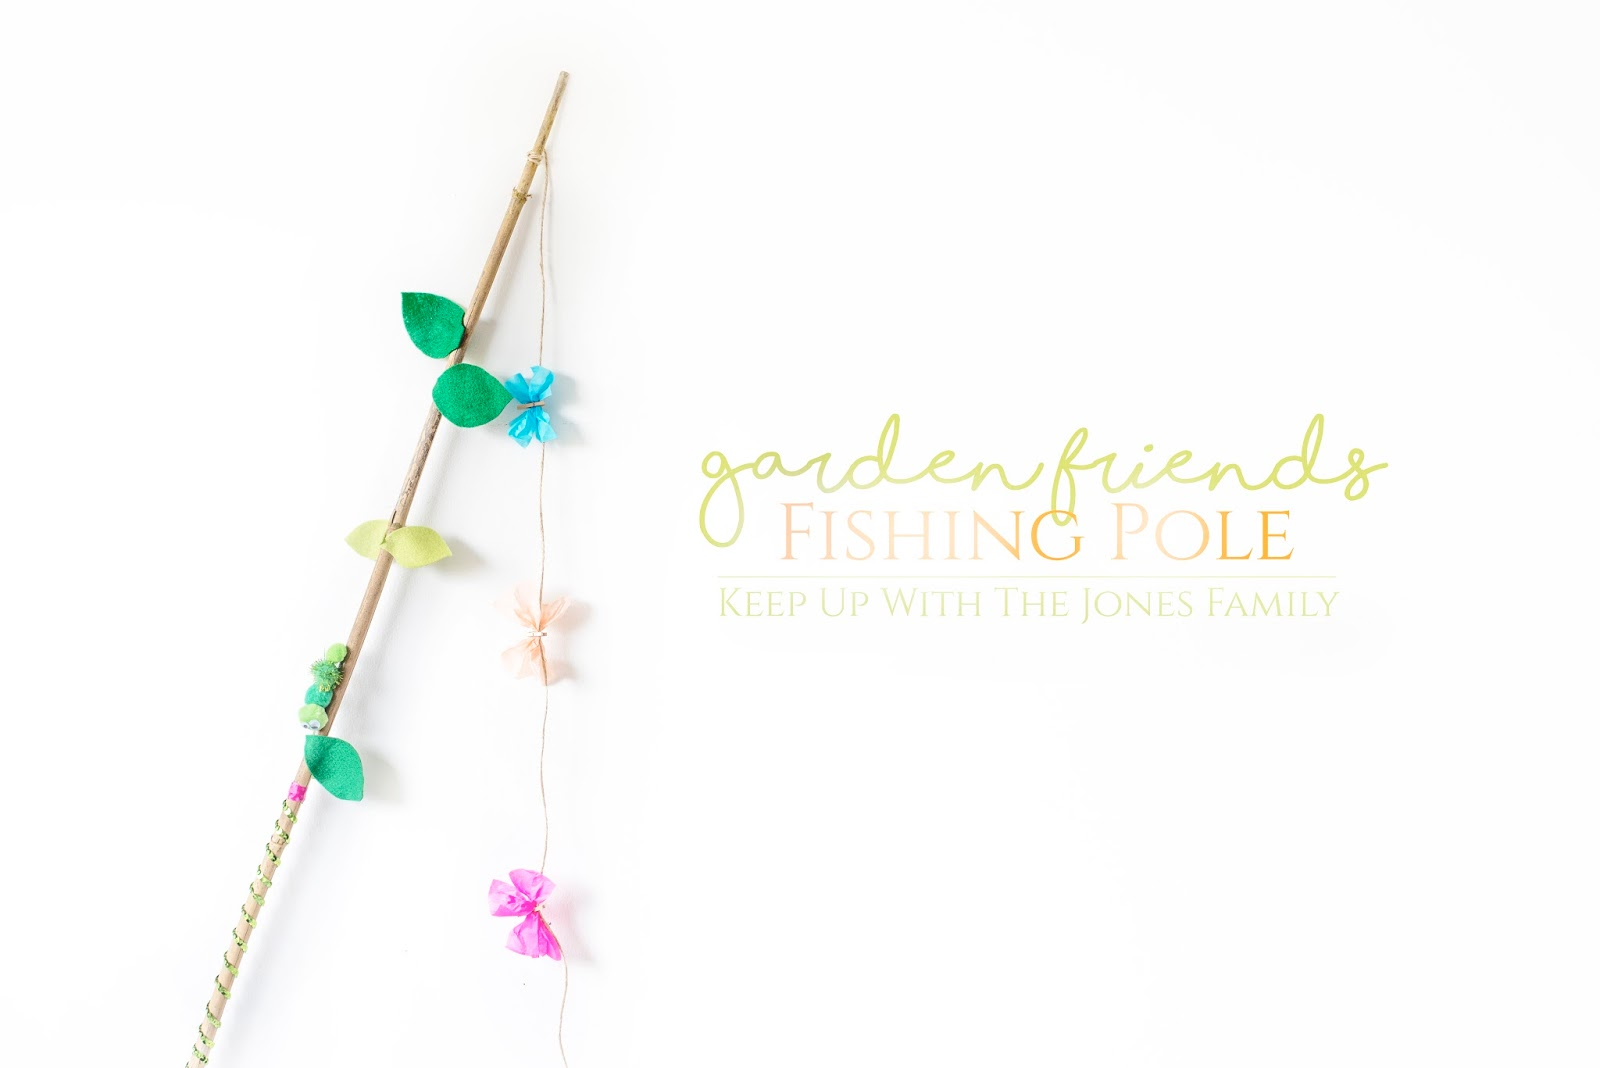 GARDEN FRIENDS FISHING POLE: A CHILD FRIENDLY PHOTOGRAPHY PROP